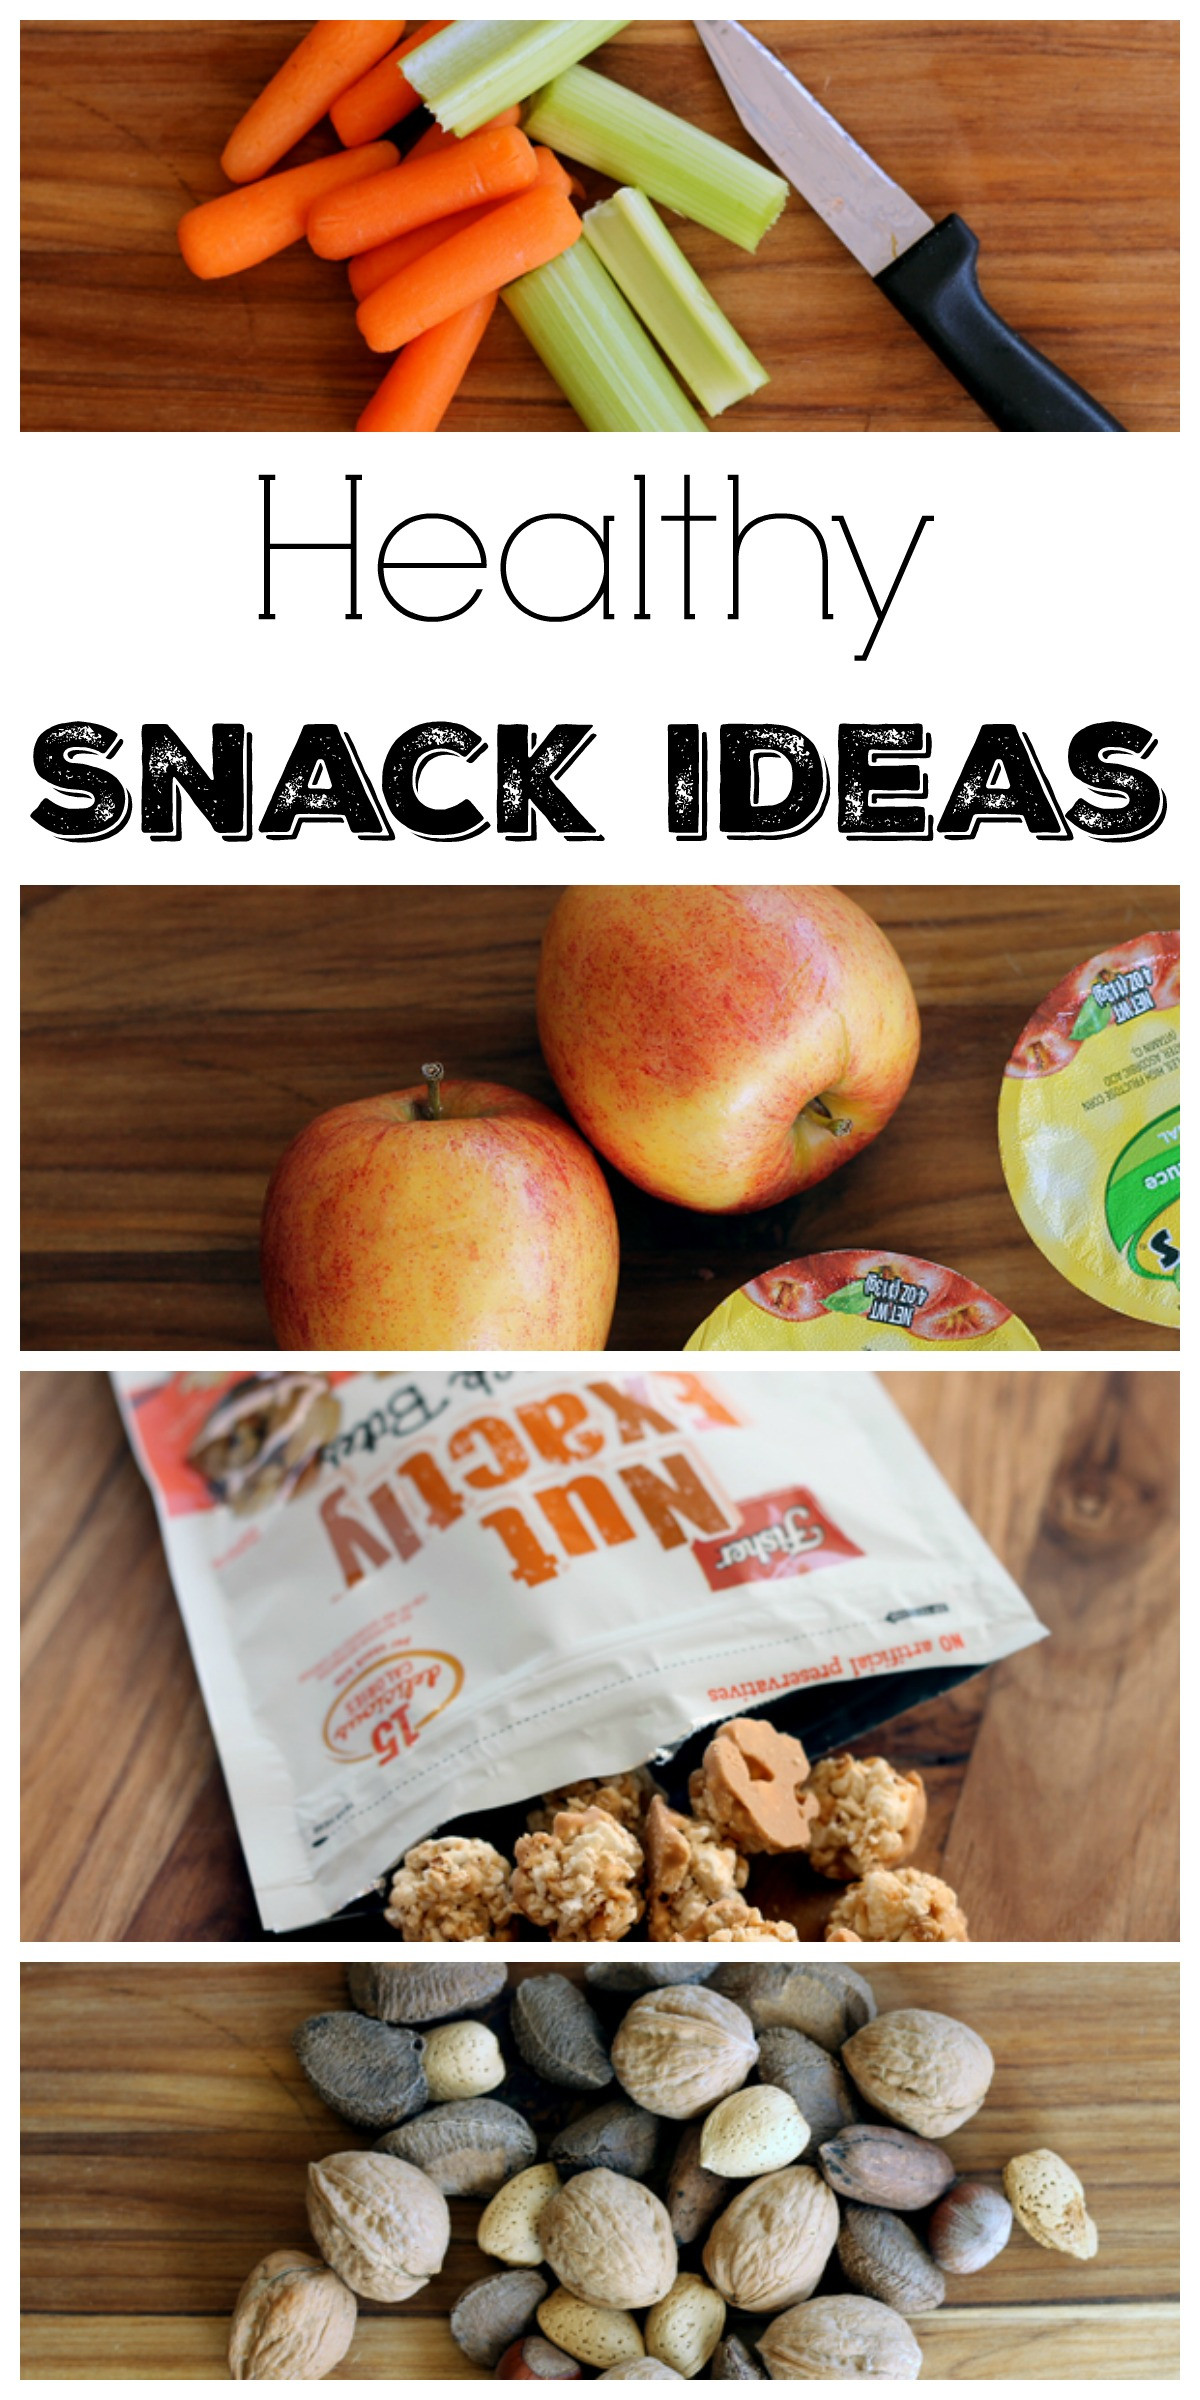 Healthy Snacks For Adults  just for fun Archives Page 2 of 20 The Country Chic